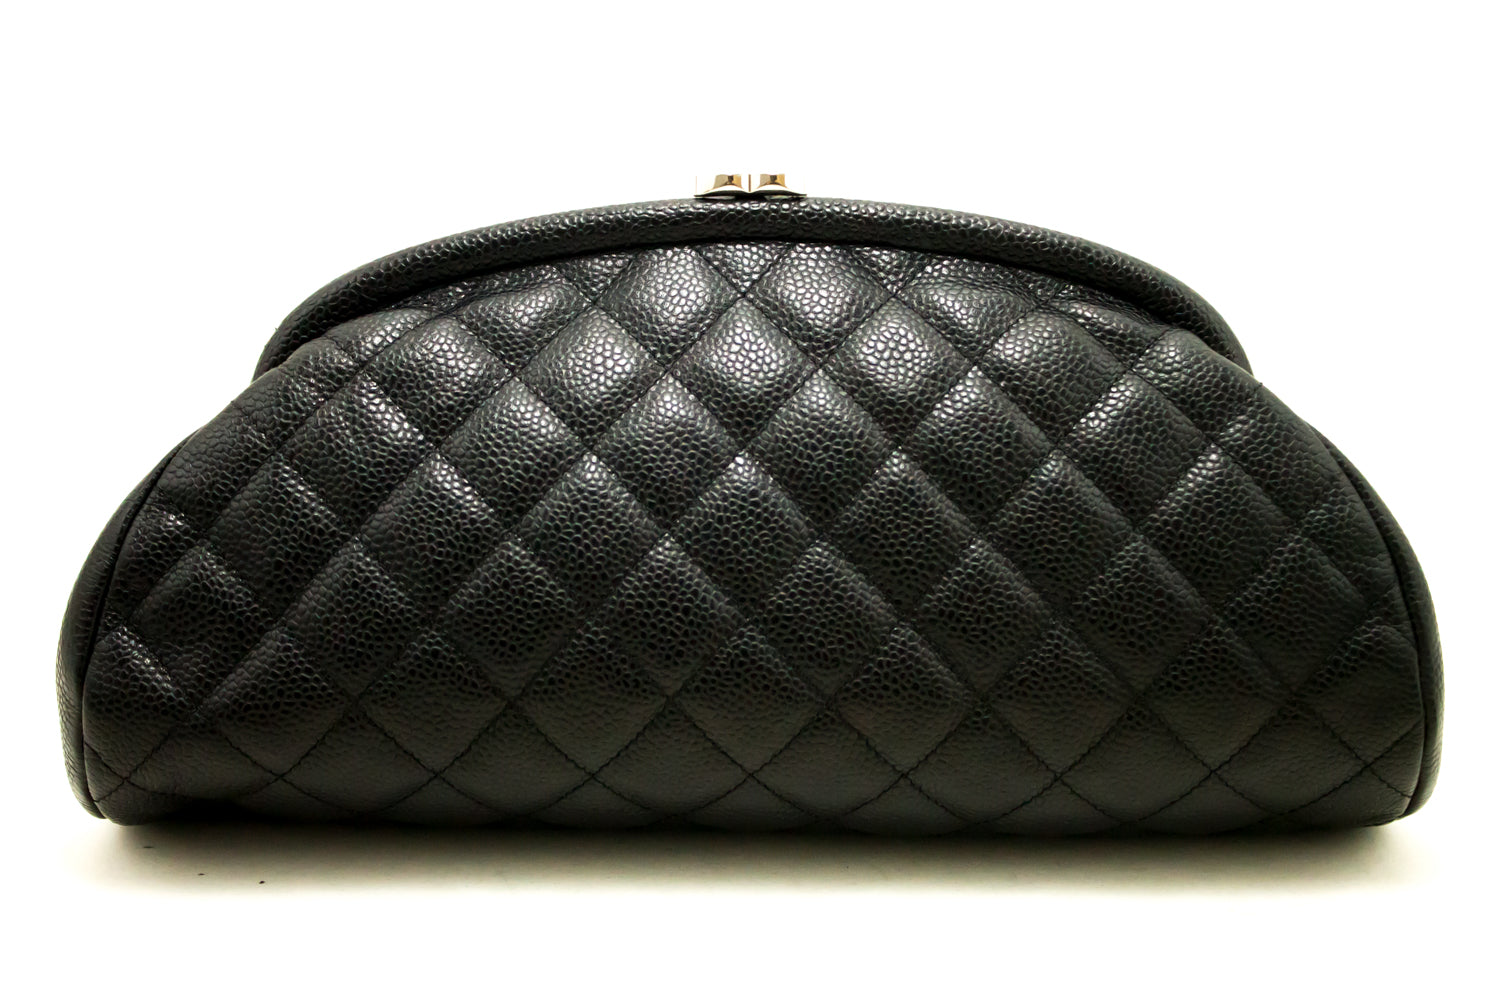 efed1b081a57 ... CHANEL Caviar Timeless Clutch Bag Black Quilted Silver Hardware k01 ...